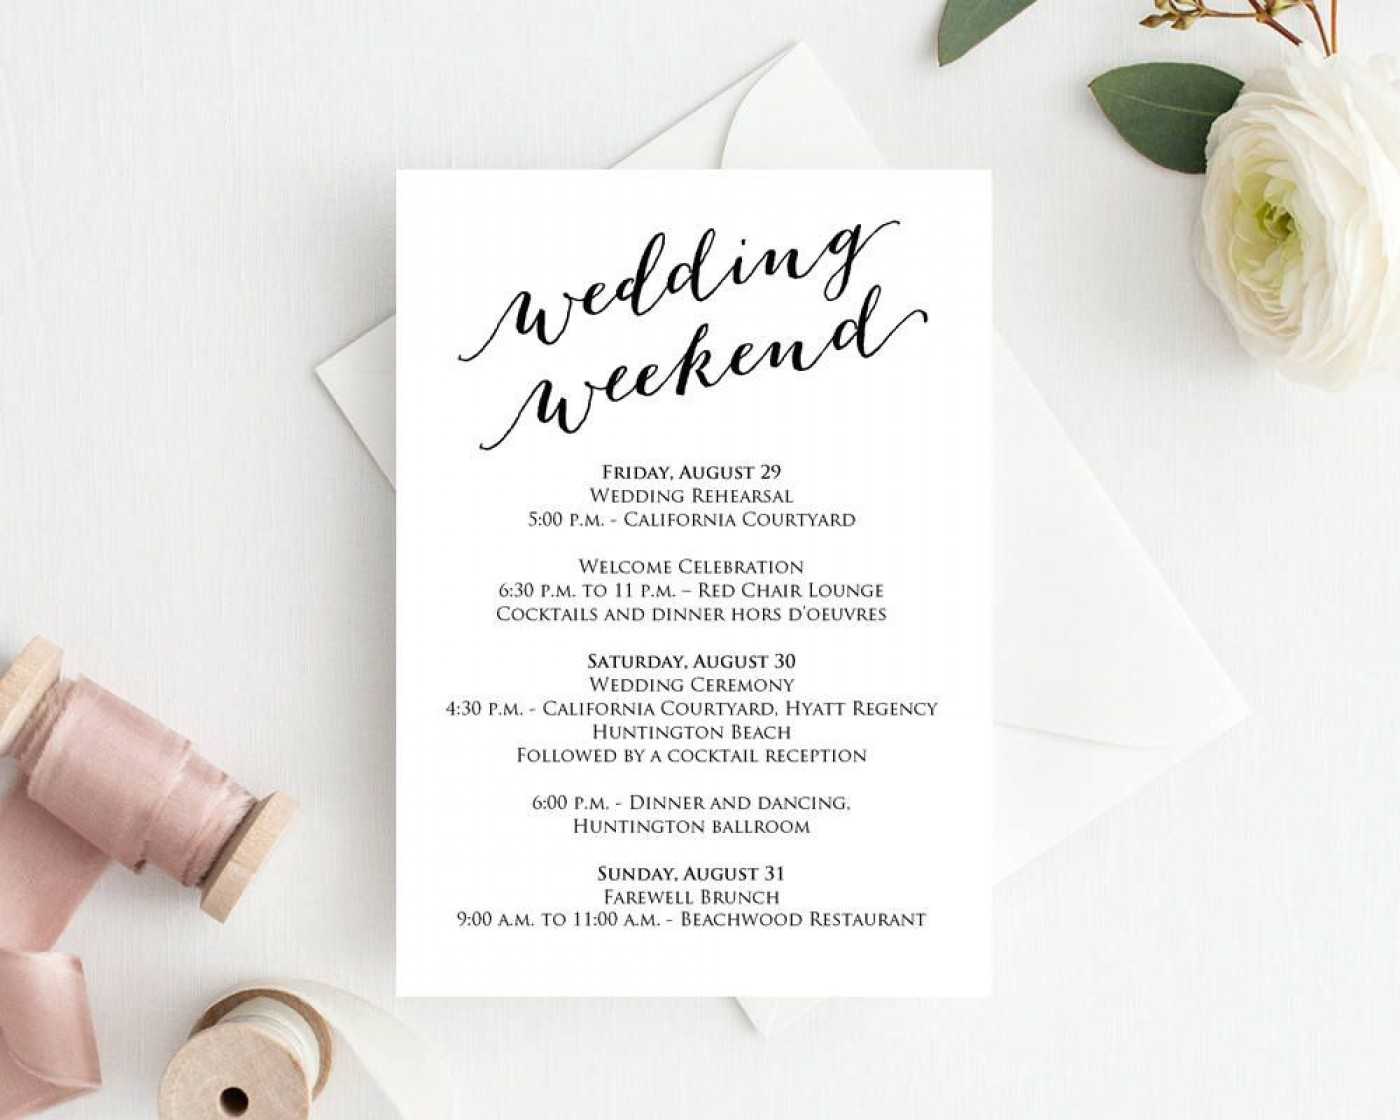 004 Unique Wedding Weekend Itinerary Template Example  Day Timeline Word Sample1400